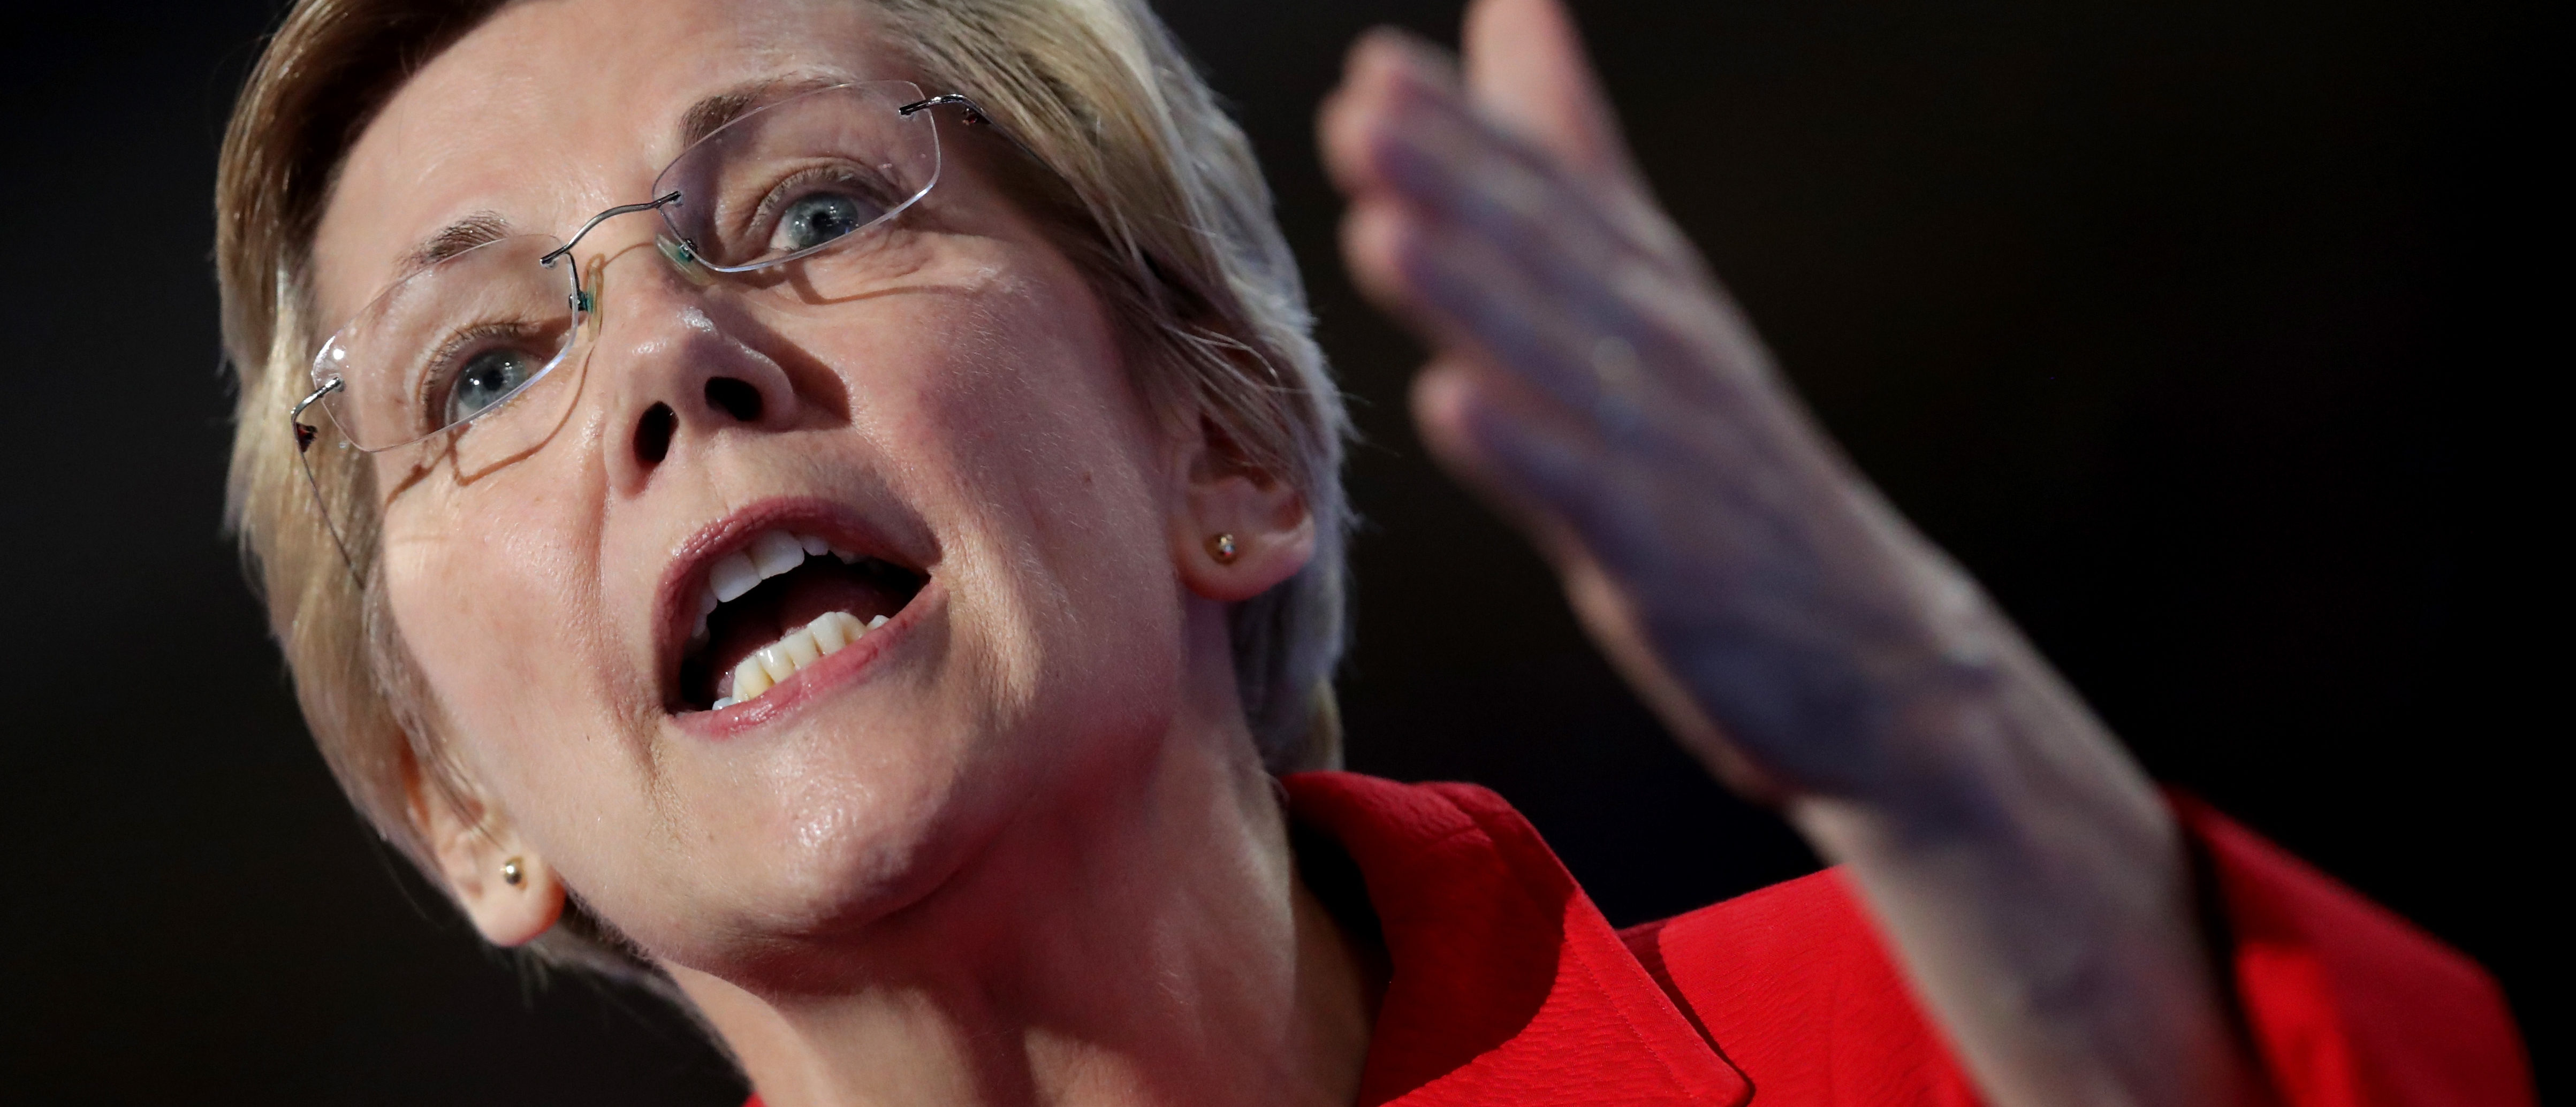 Sen. Elizabeth Warren (D-MA) delivers remarks on the first day of the Democratic National Convention at the Wells Fargo Center, July 25, 2016 in Philadelphia, Pennsylvania. An estimated 50,000 people are expected in Philadelphia, including hundreds of protesters and members of the media. The four-day Democratic National Convention kicked off July 25. (Photo by Chip Somodevilla/Getty Images)